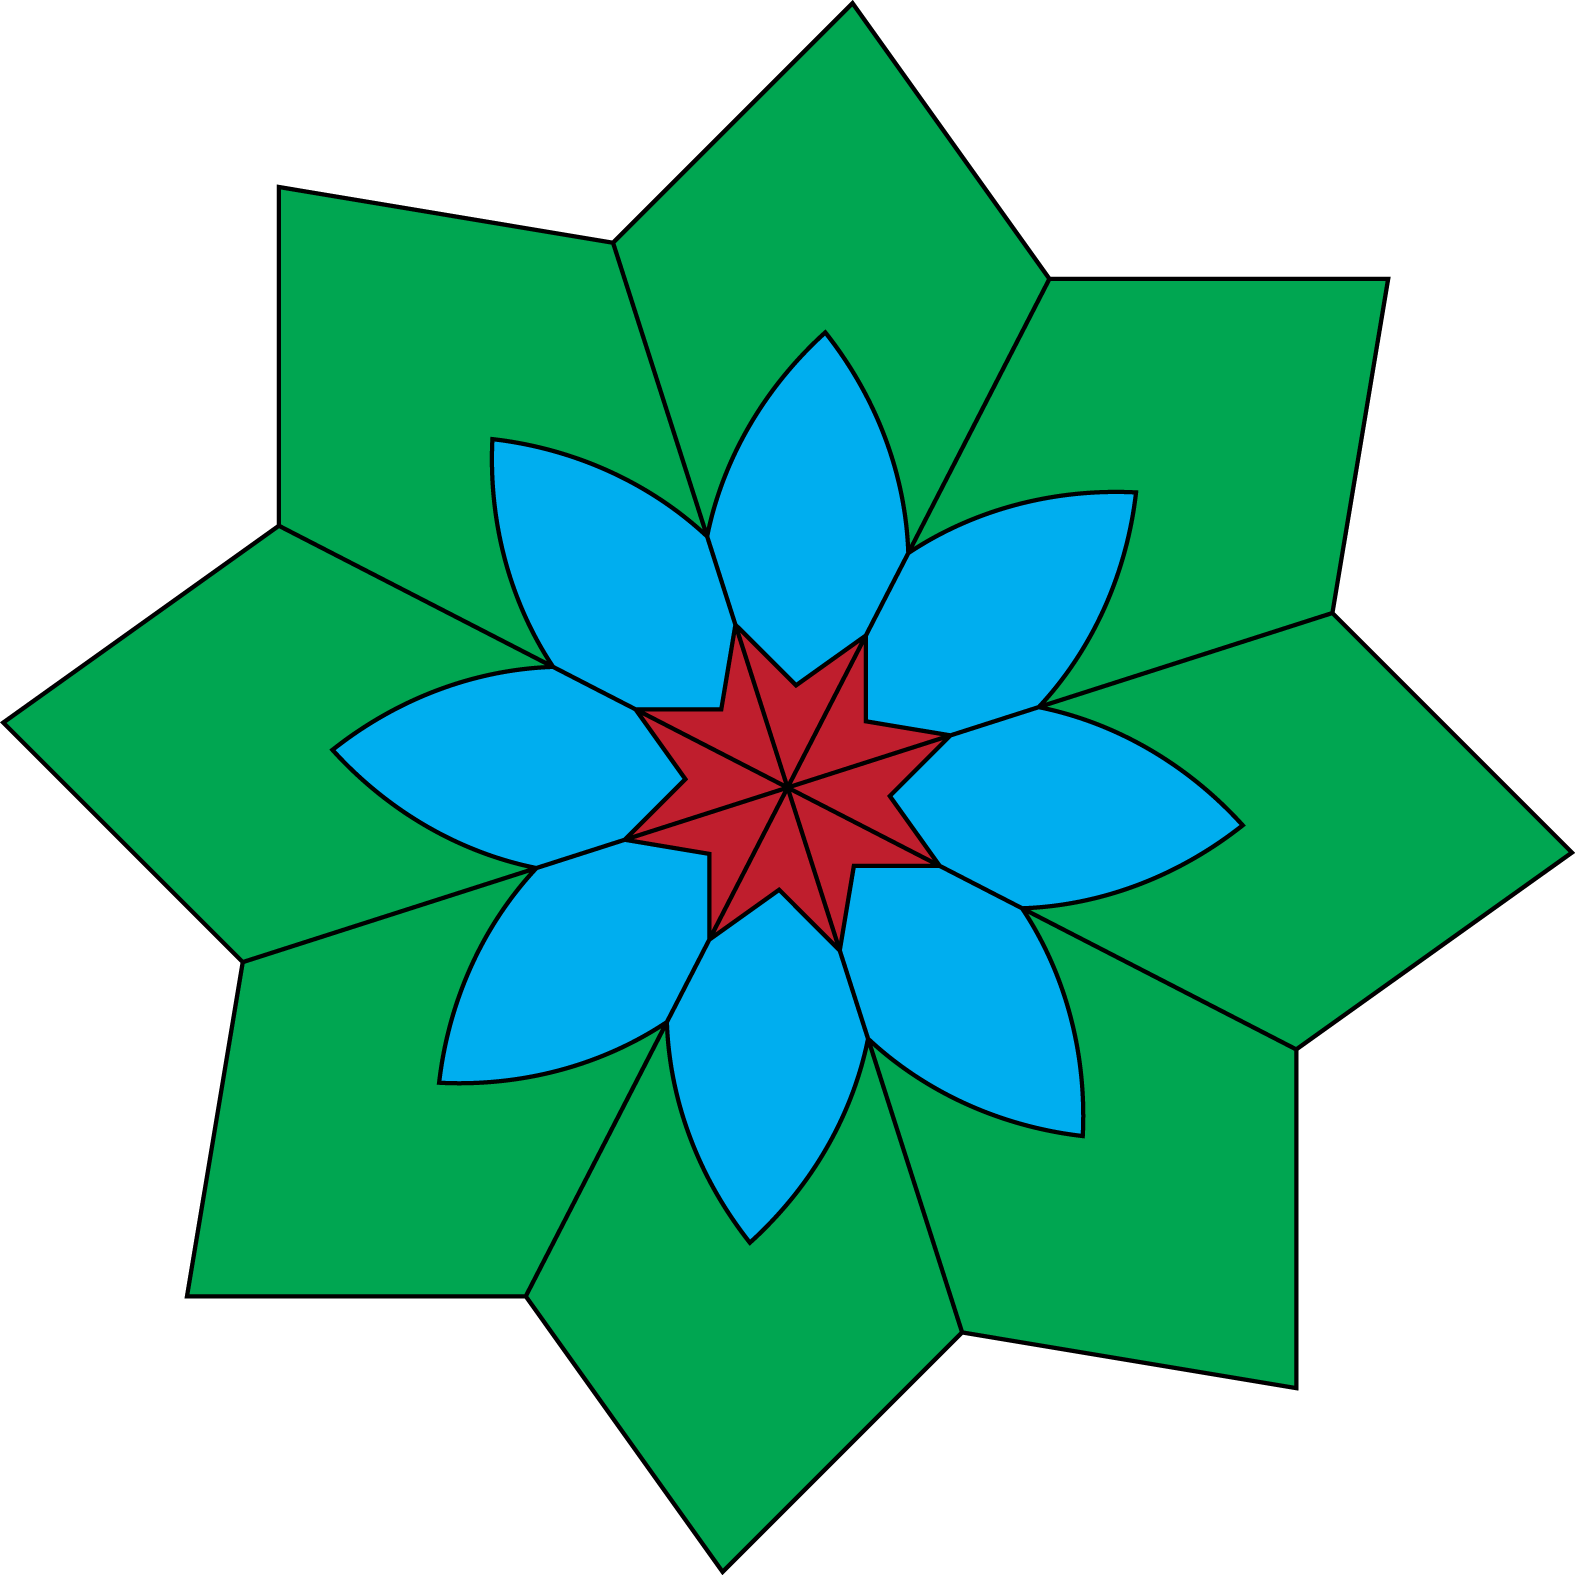 Flowers clipart origami. Kaleidoscope flower free images